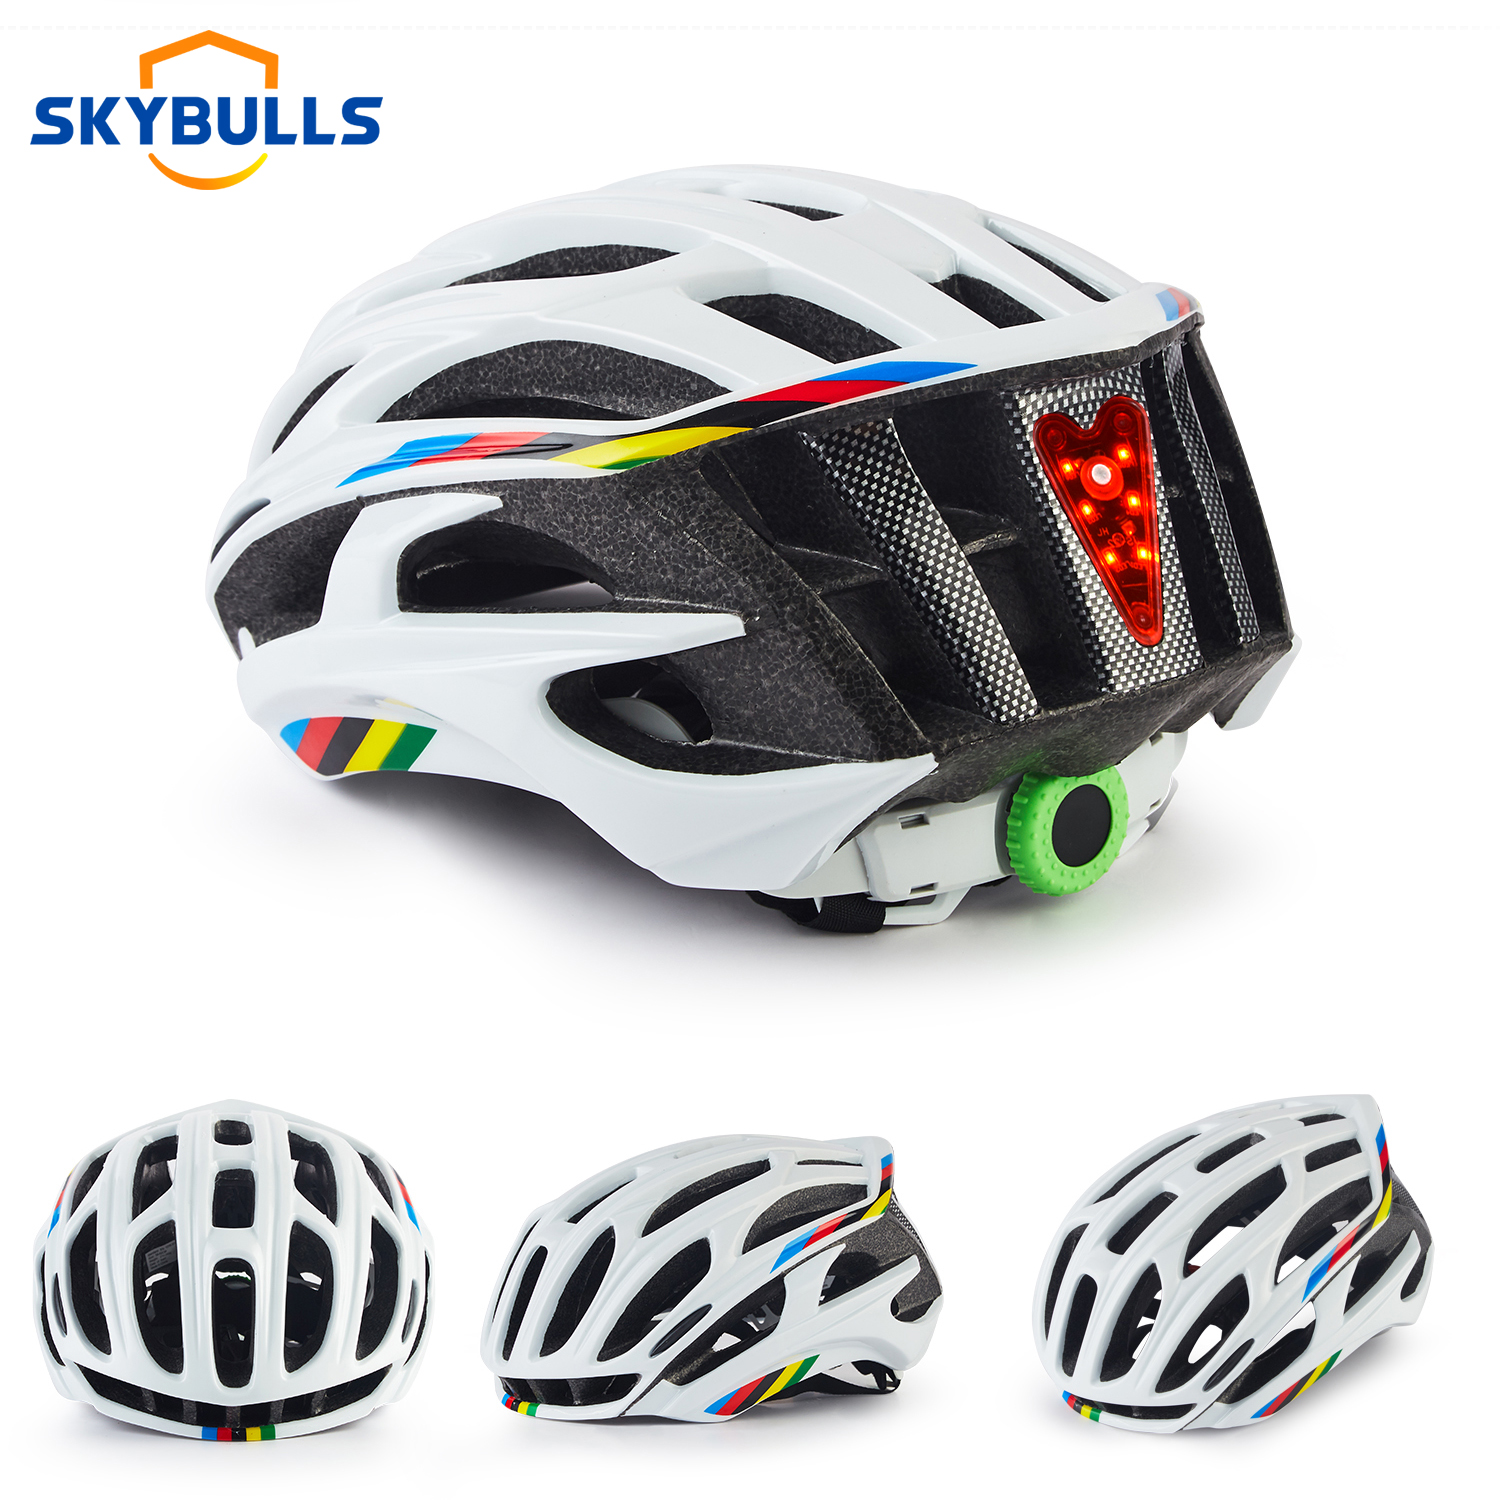 Skybulls Road Mountain Bike Helmet Man Ultralight casco MTB Cycling Helmet With LED Taillight Sport Safe Gear capacete ciclismo(China)